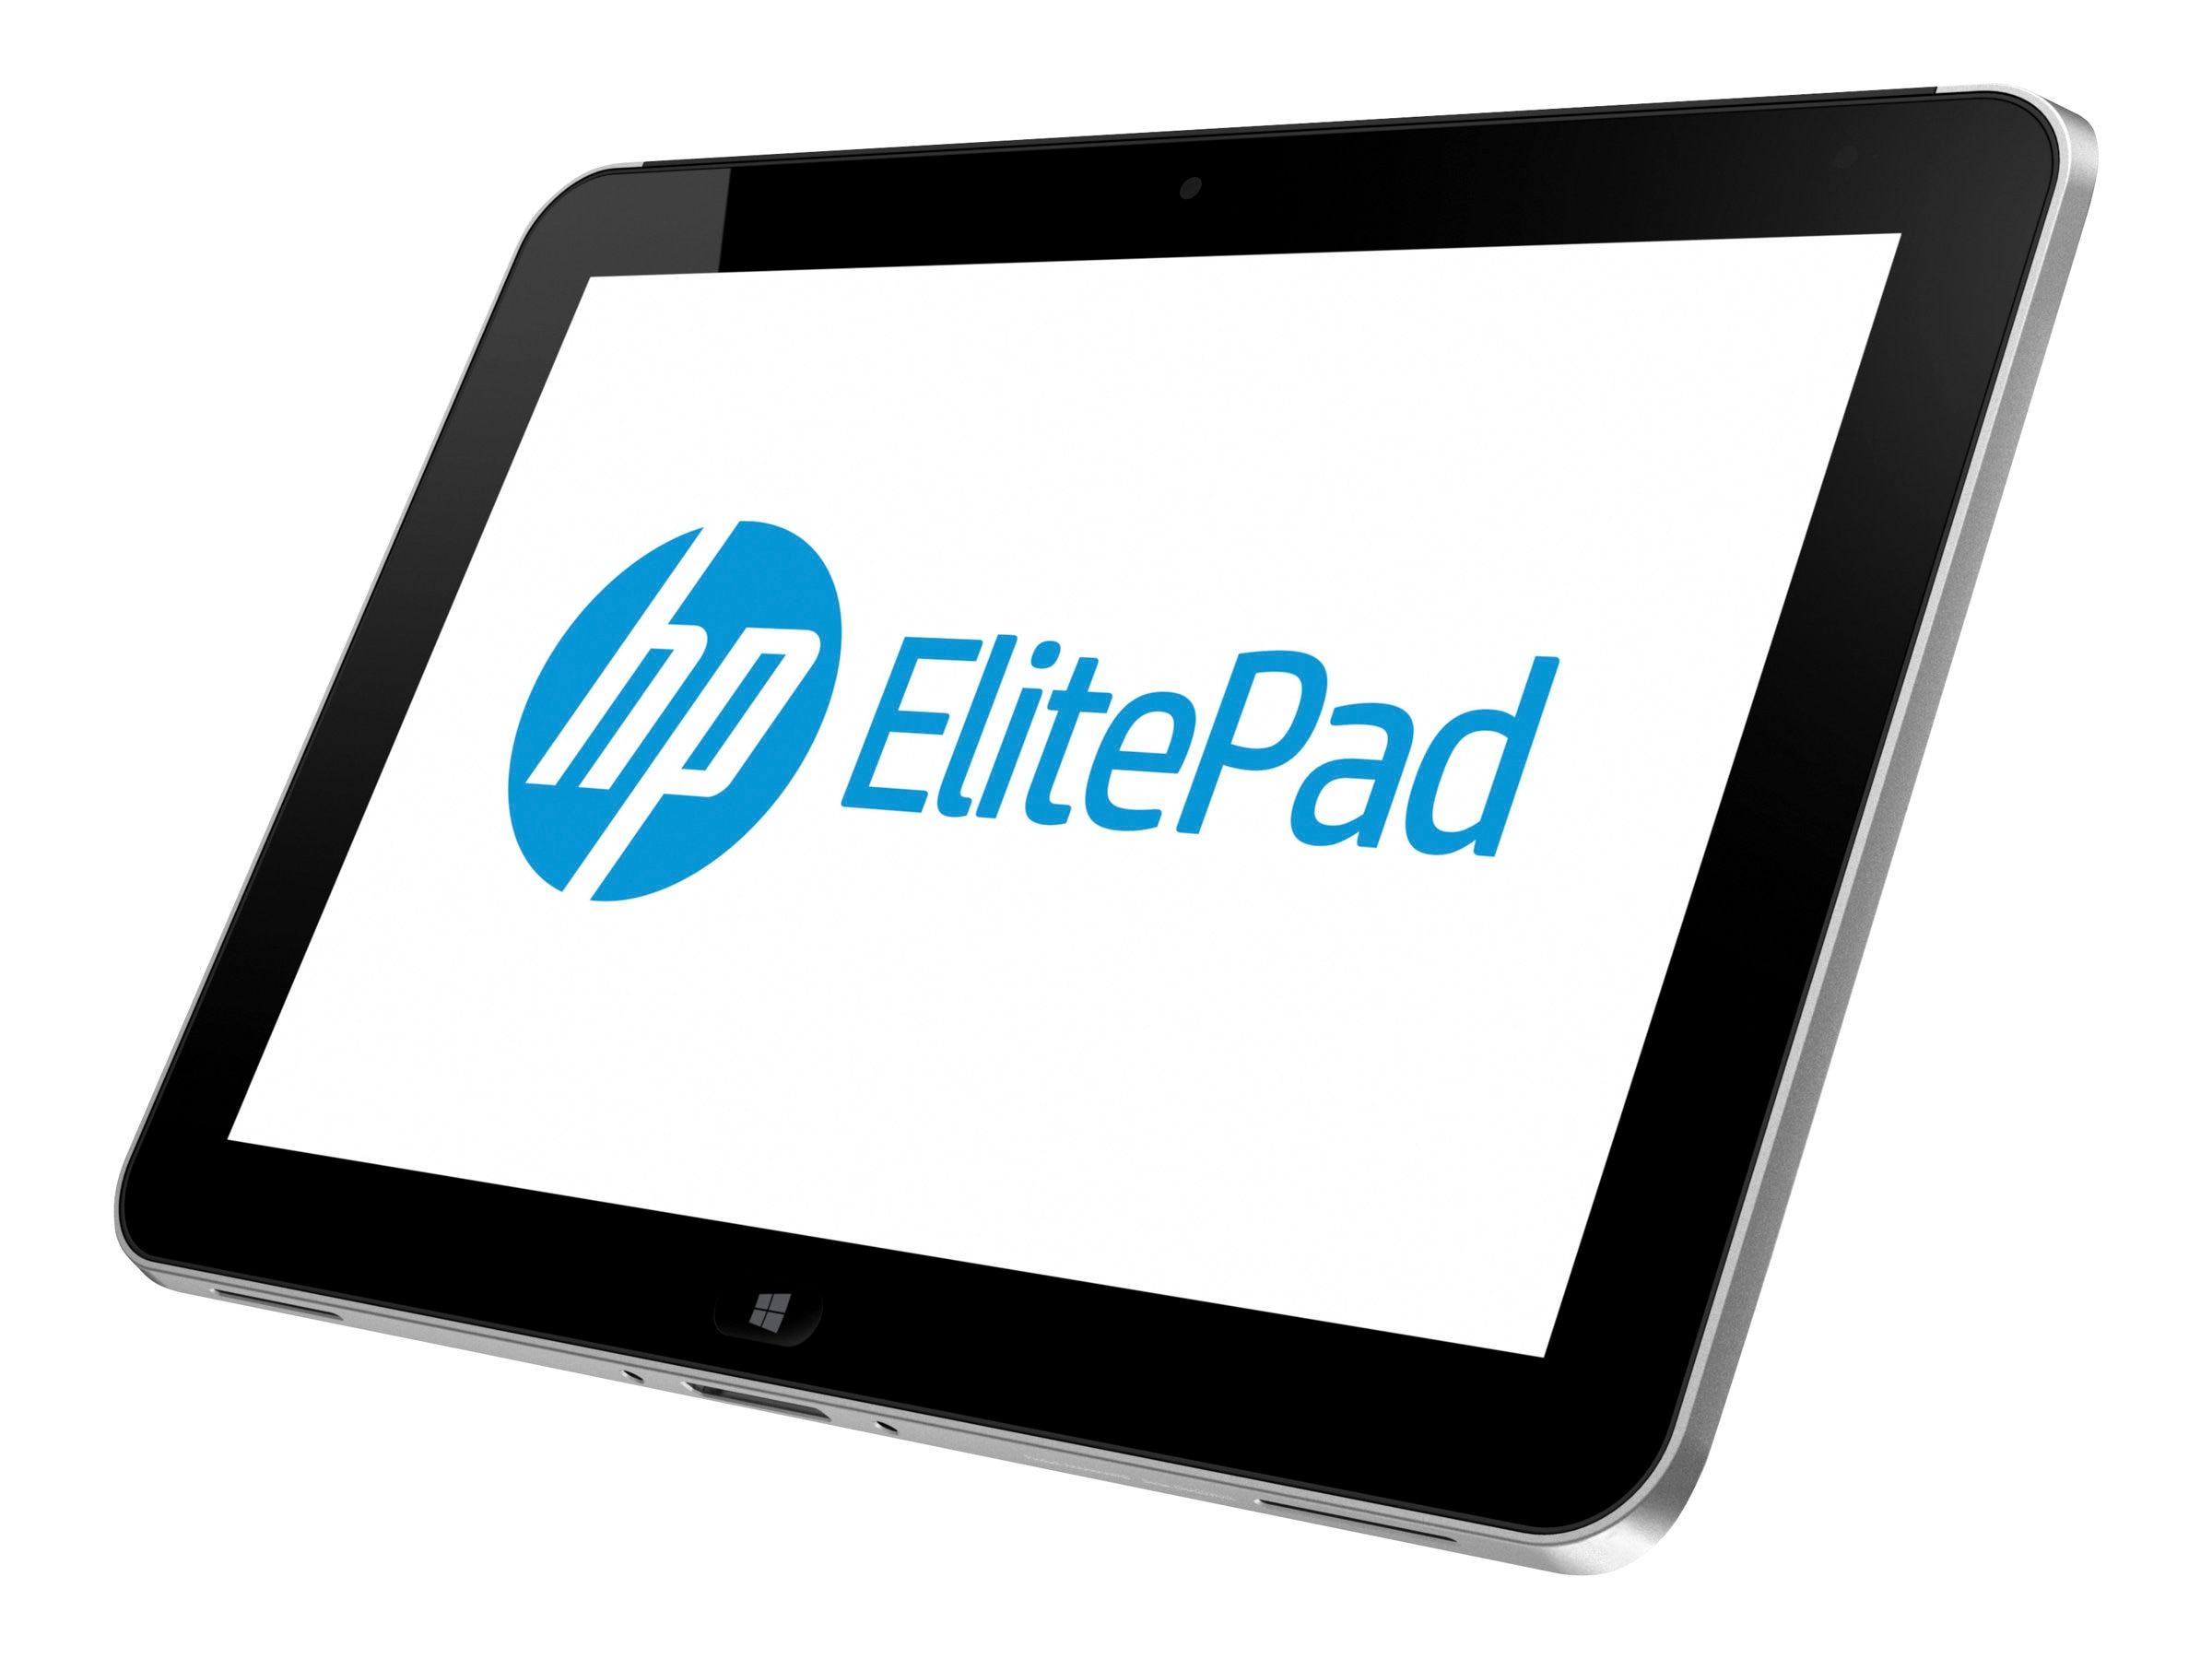 HP ElitePad 900 1.8GHz processor Windows 8